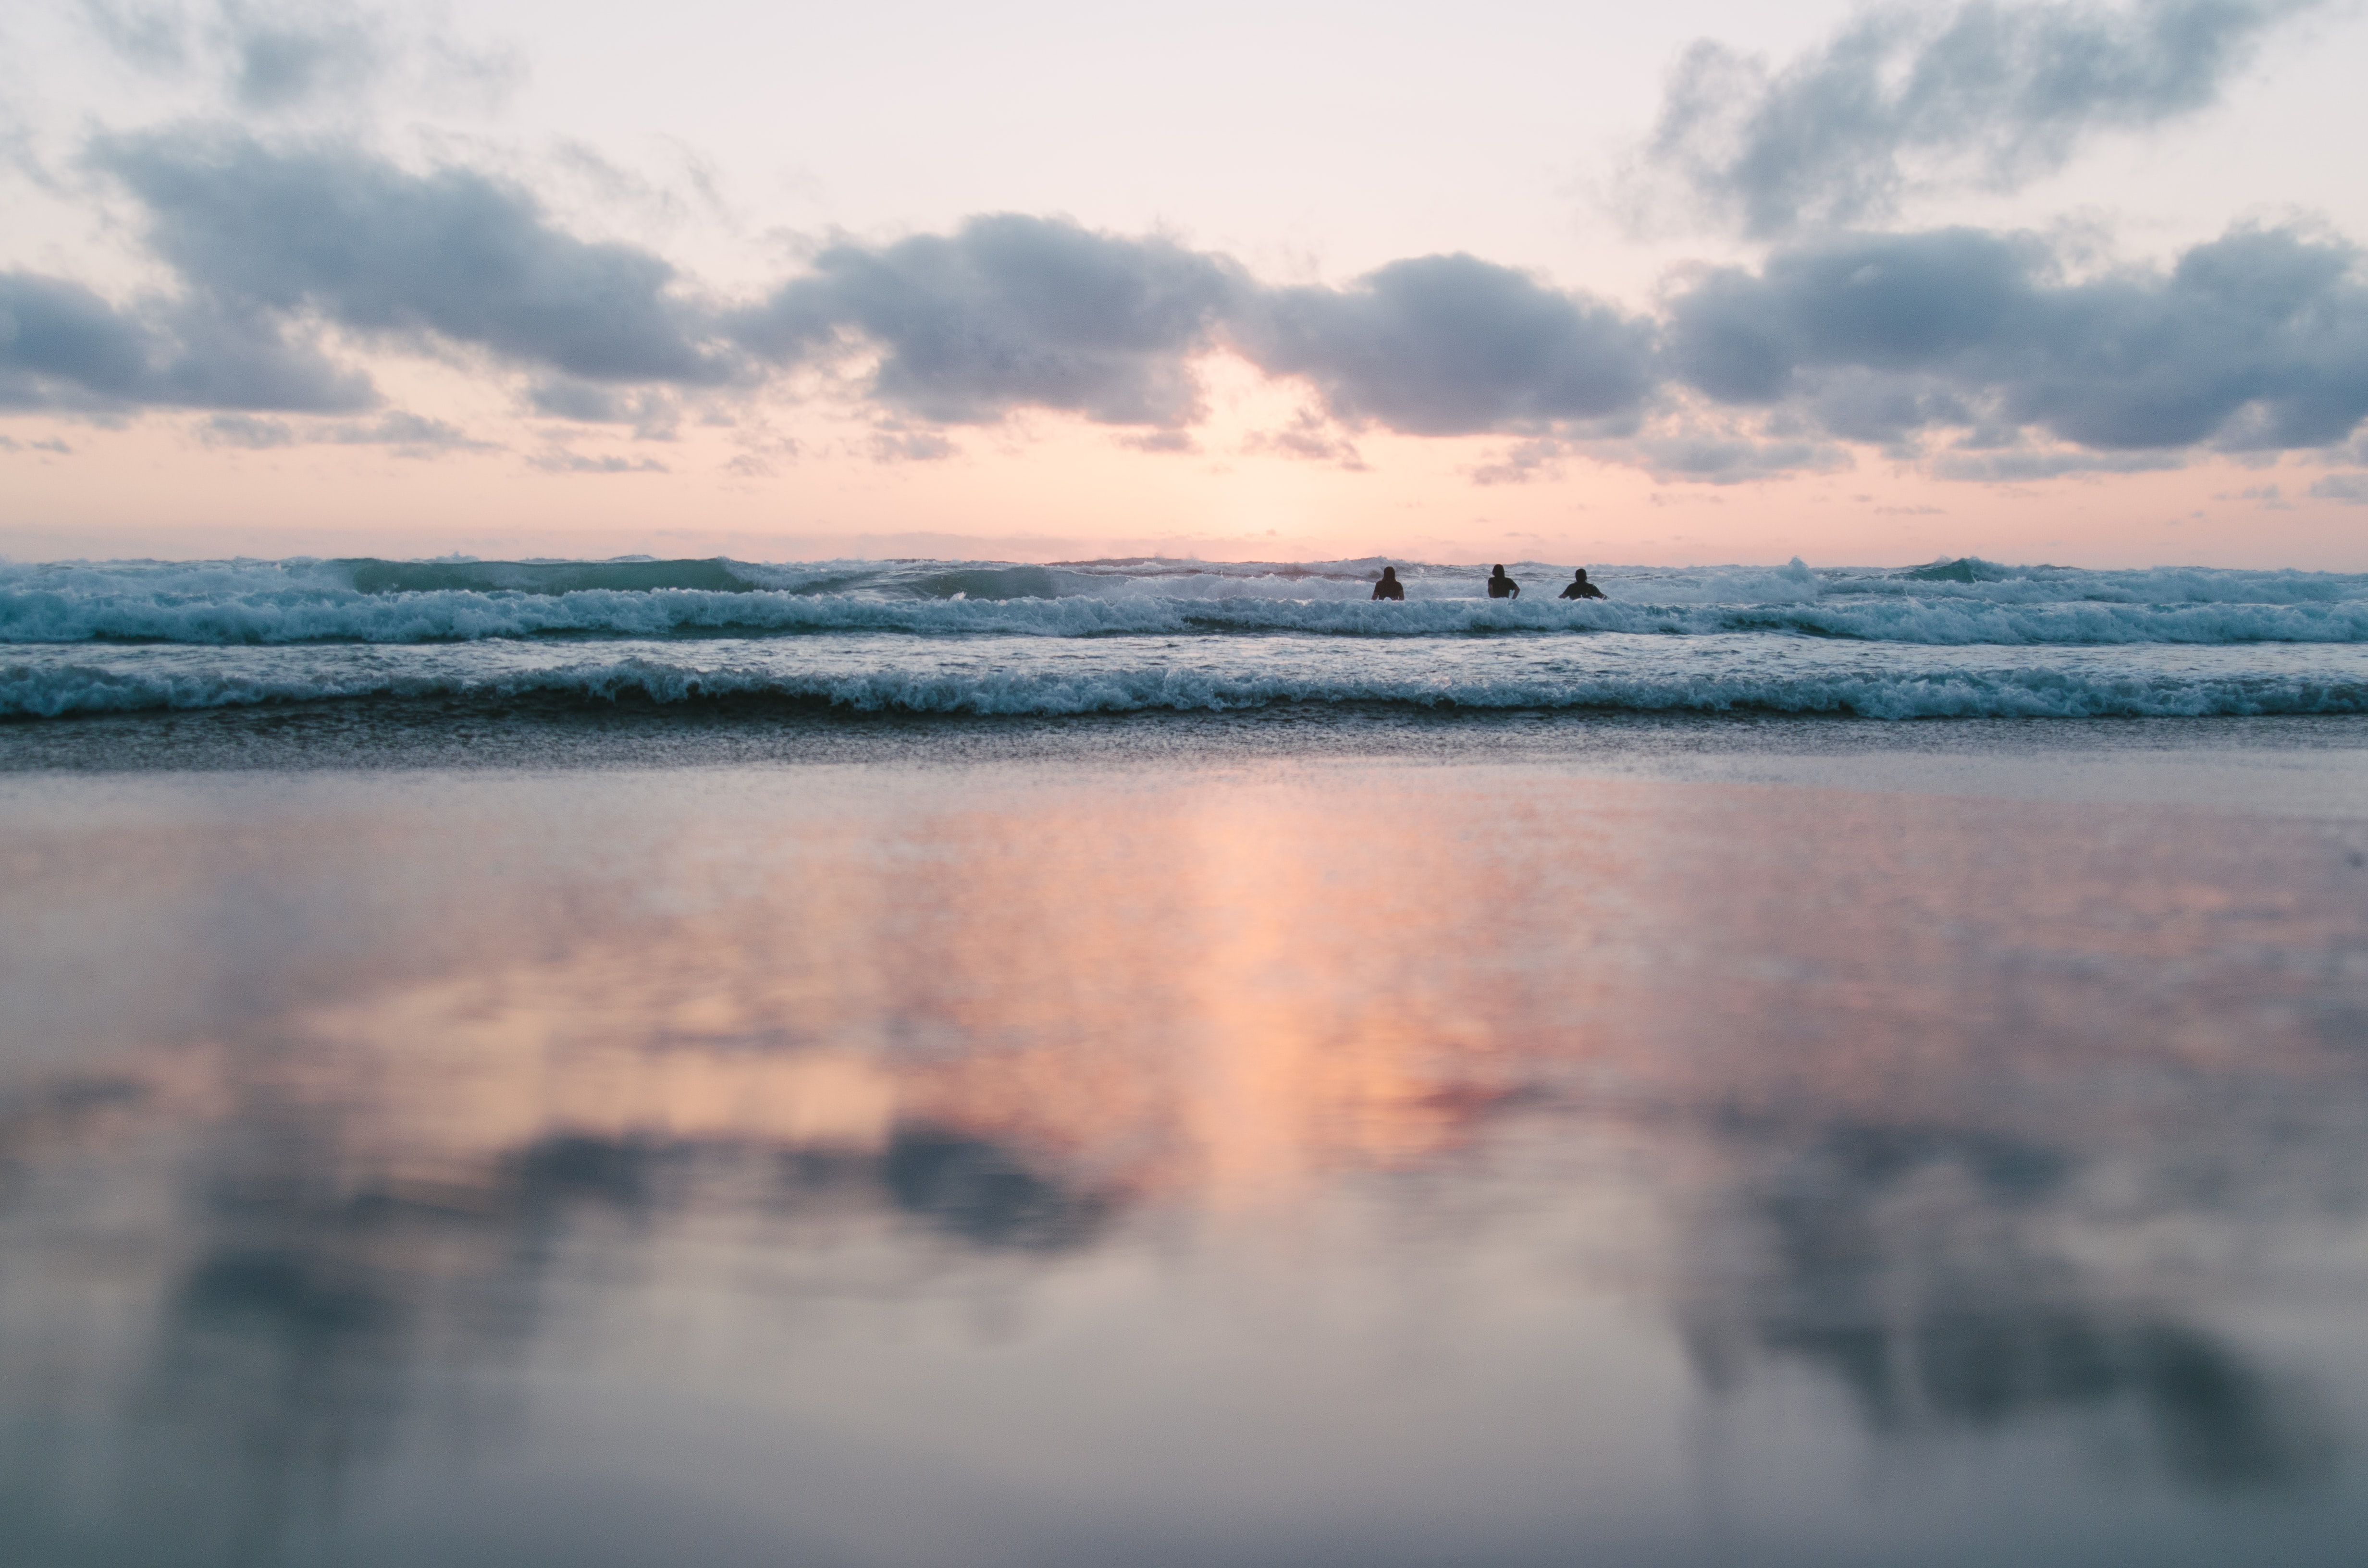 Three people in ocean waves, with a blurred reflection of a partly cloudy pastel sunset in the foreground